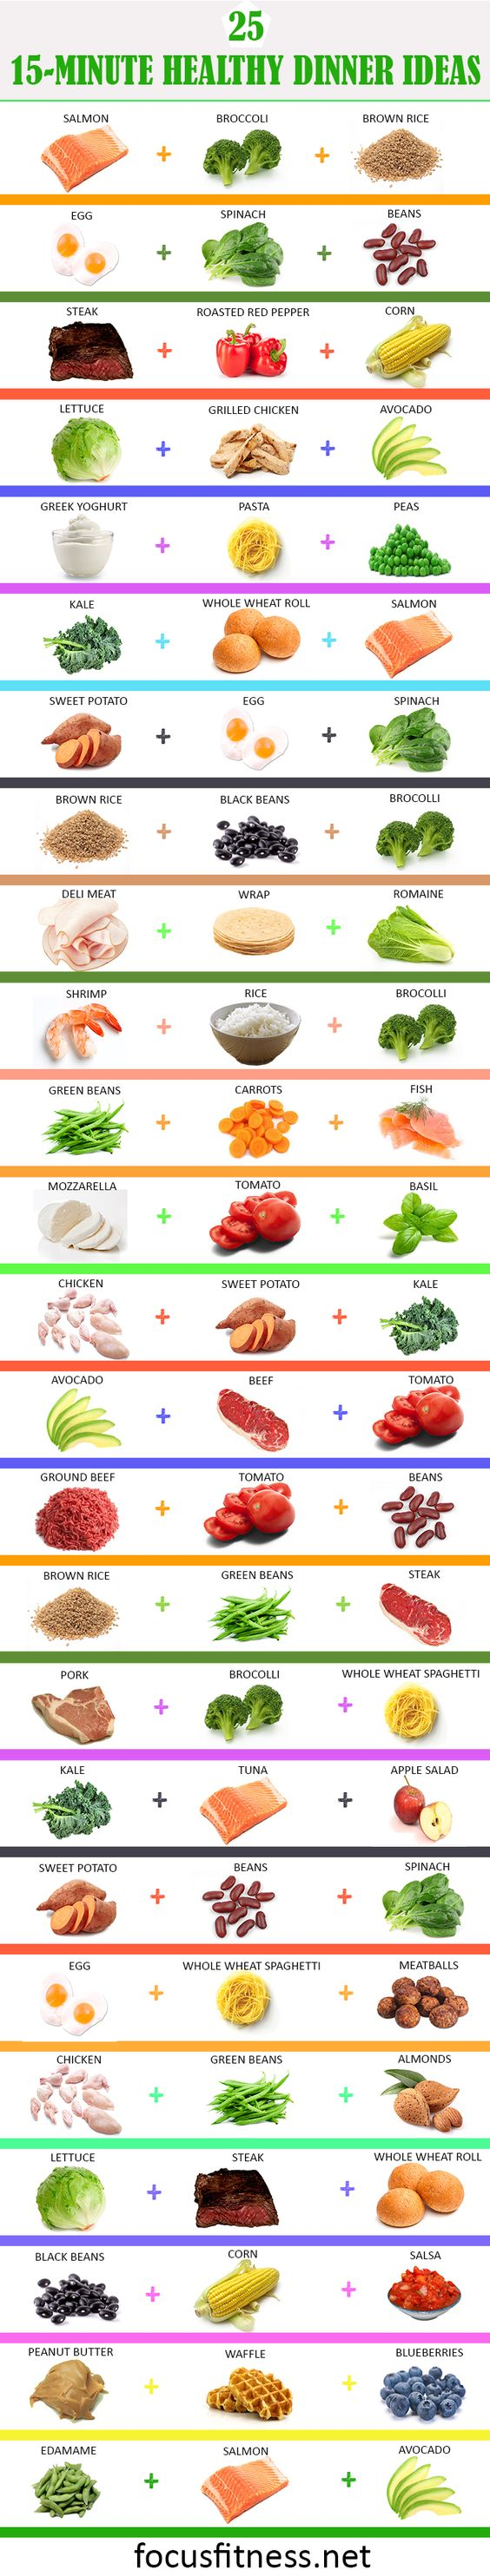 25 Healthy Dinner Ideas For Weight Loss That Take Less Than 15 Minutes To Mak